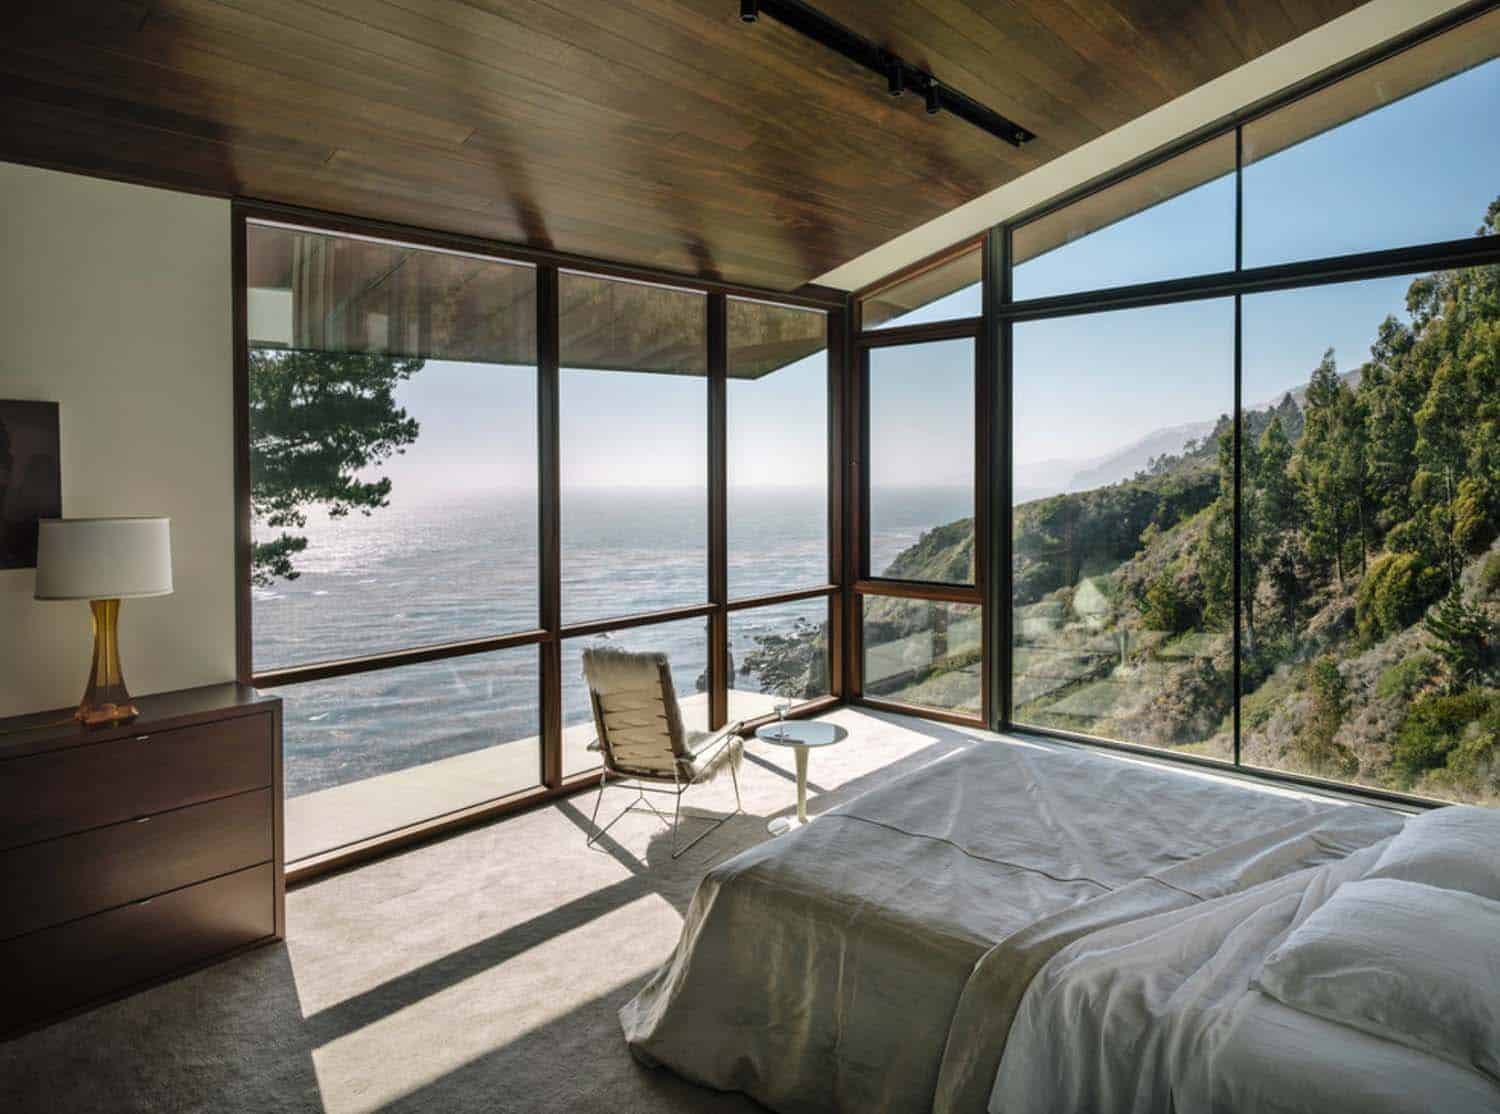 Bedroom With Ocean Views-22-1 Kindesign